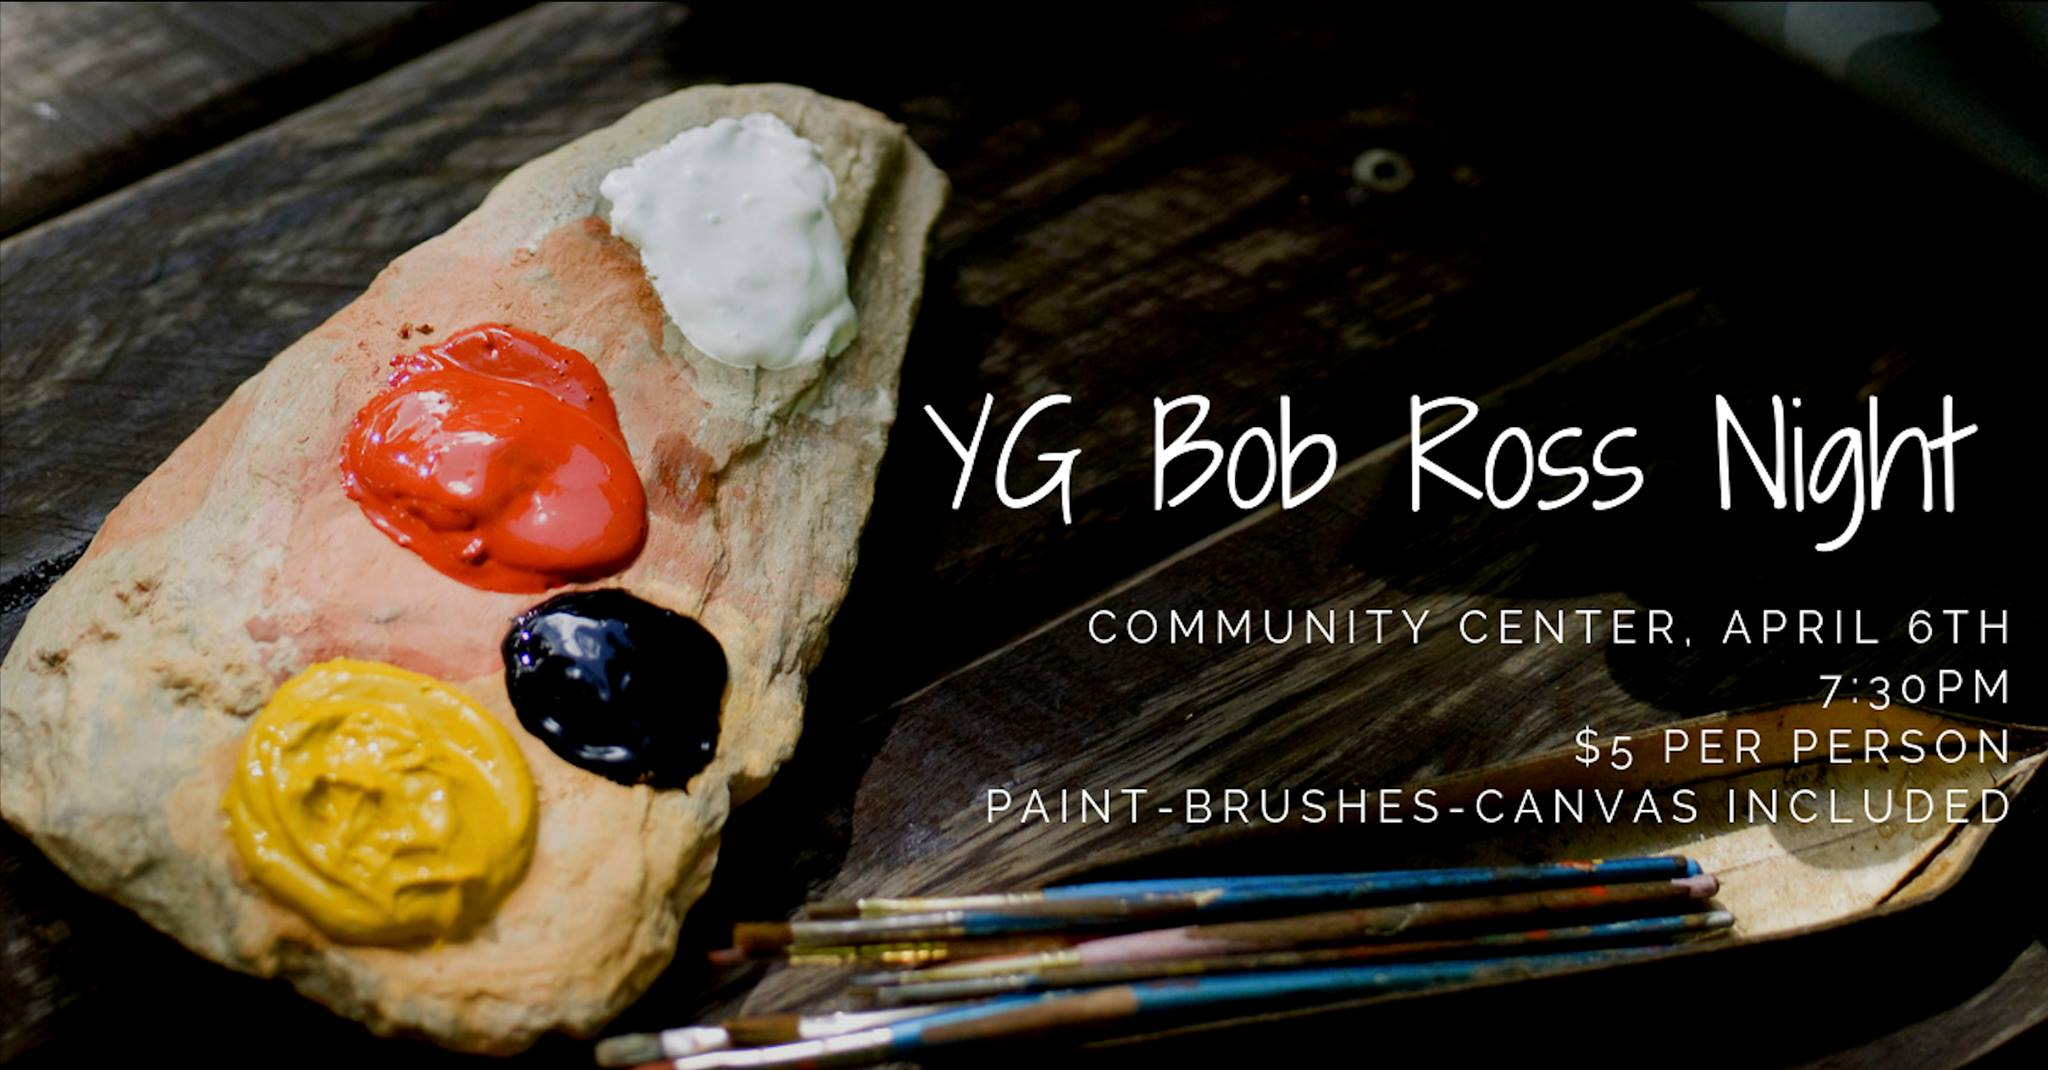 """Bob Ross Night: A YG Social  Kelsey and Khaeris Geurrero, YG's social coordinators, invite you to our """"Bob Ross"""" night for a fun painting tutorial evening with a twist. Join us in the Revive Community Center downstairs on Saturday evening, April 6 at 7:30 PM. Admission cover of just $5, includes paint, brushes, and your canvas. Space is limited so RSVP on our Facebook Events page,  https://www.facebook.com/events/364780334111202/"""